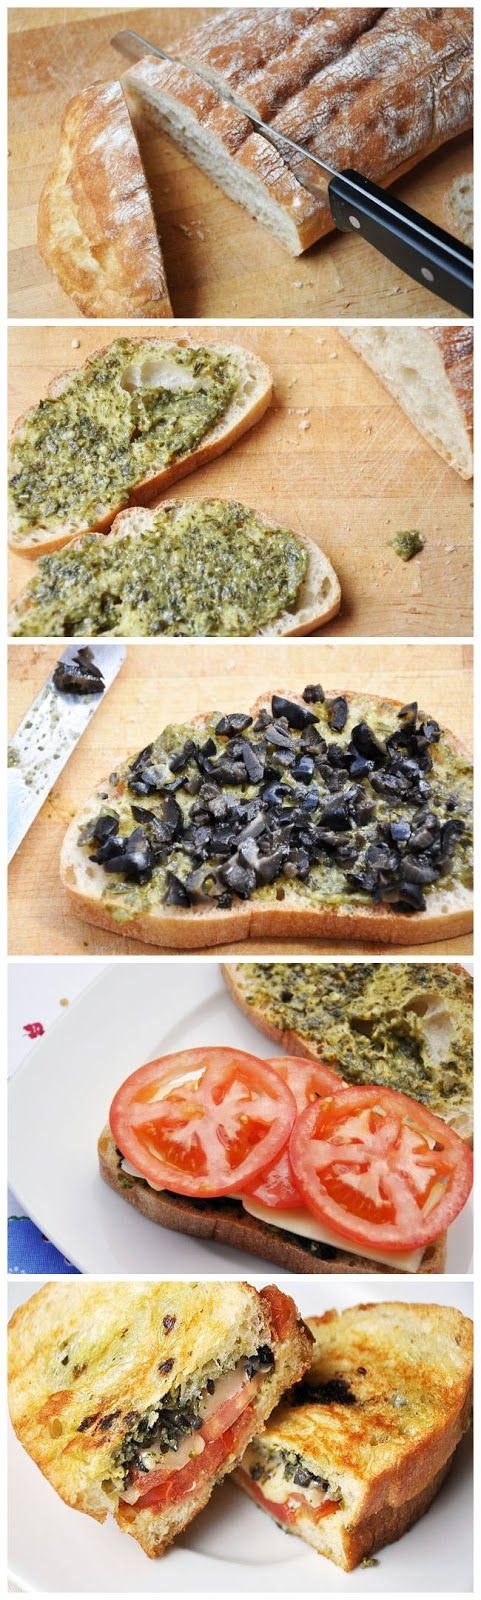 Pesto, Olives Tomato Grilled Cheese